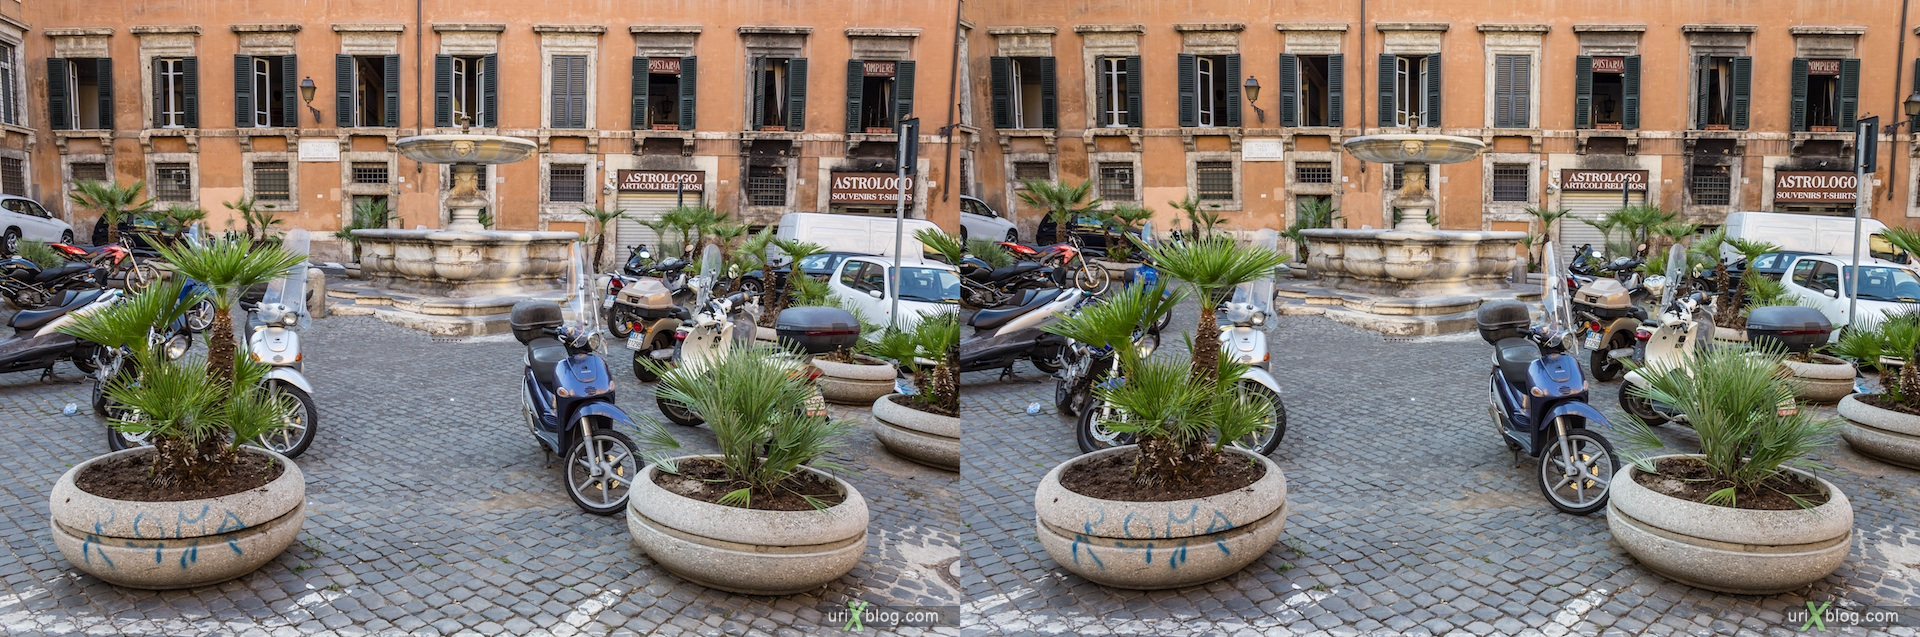 2012, Piazza delle Cinque Scole square, 3D, stereo pair, cross-eyed, crossview, cross view stereo pair